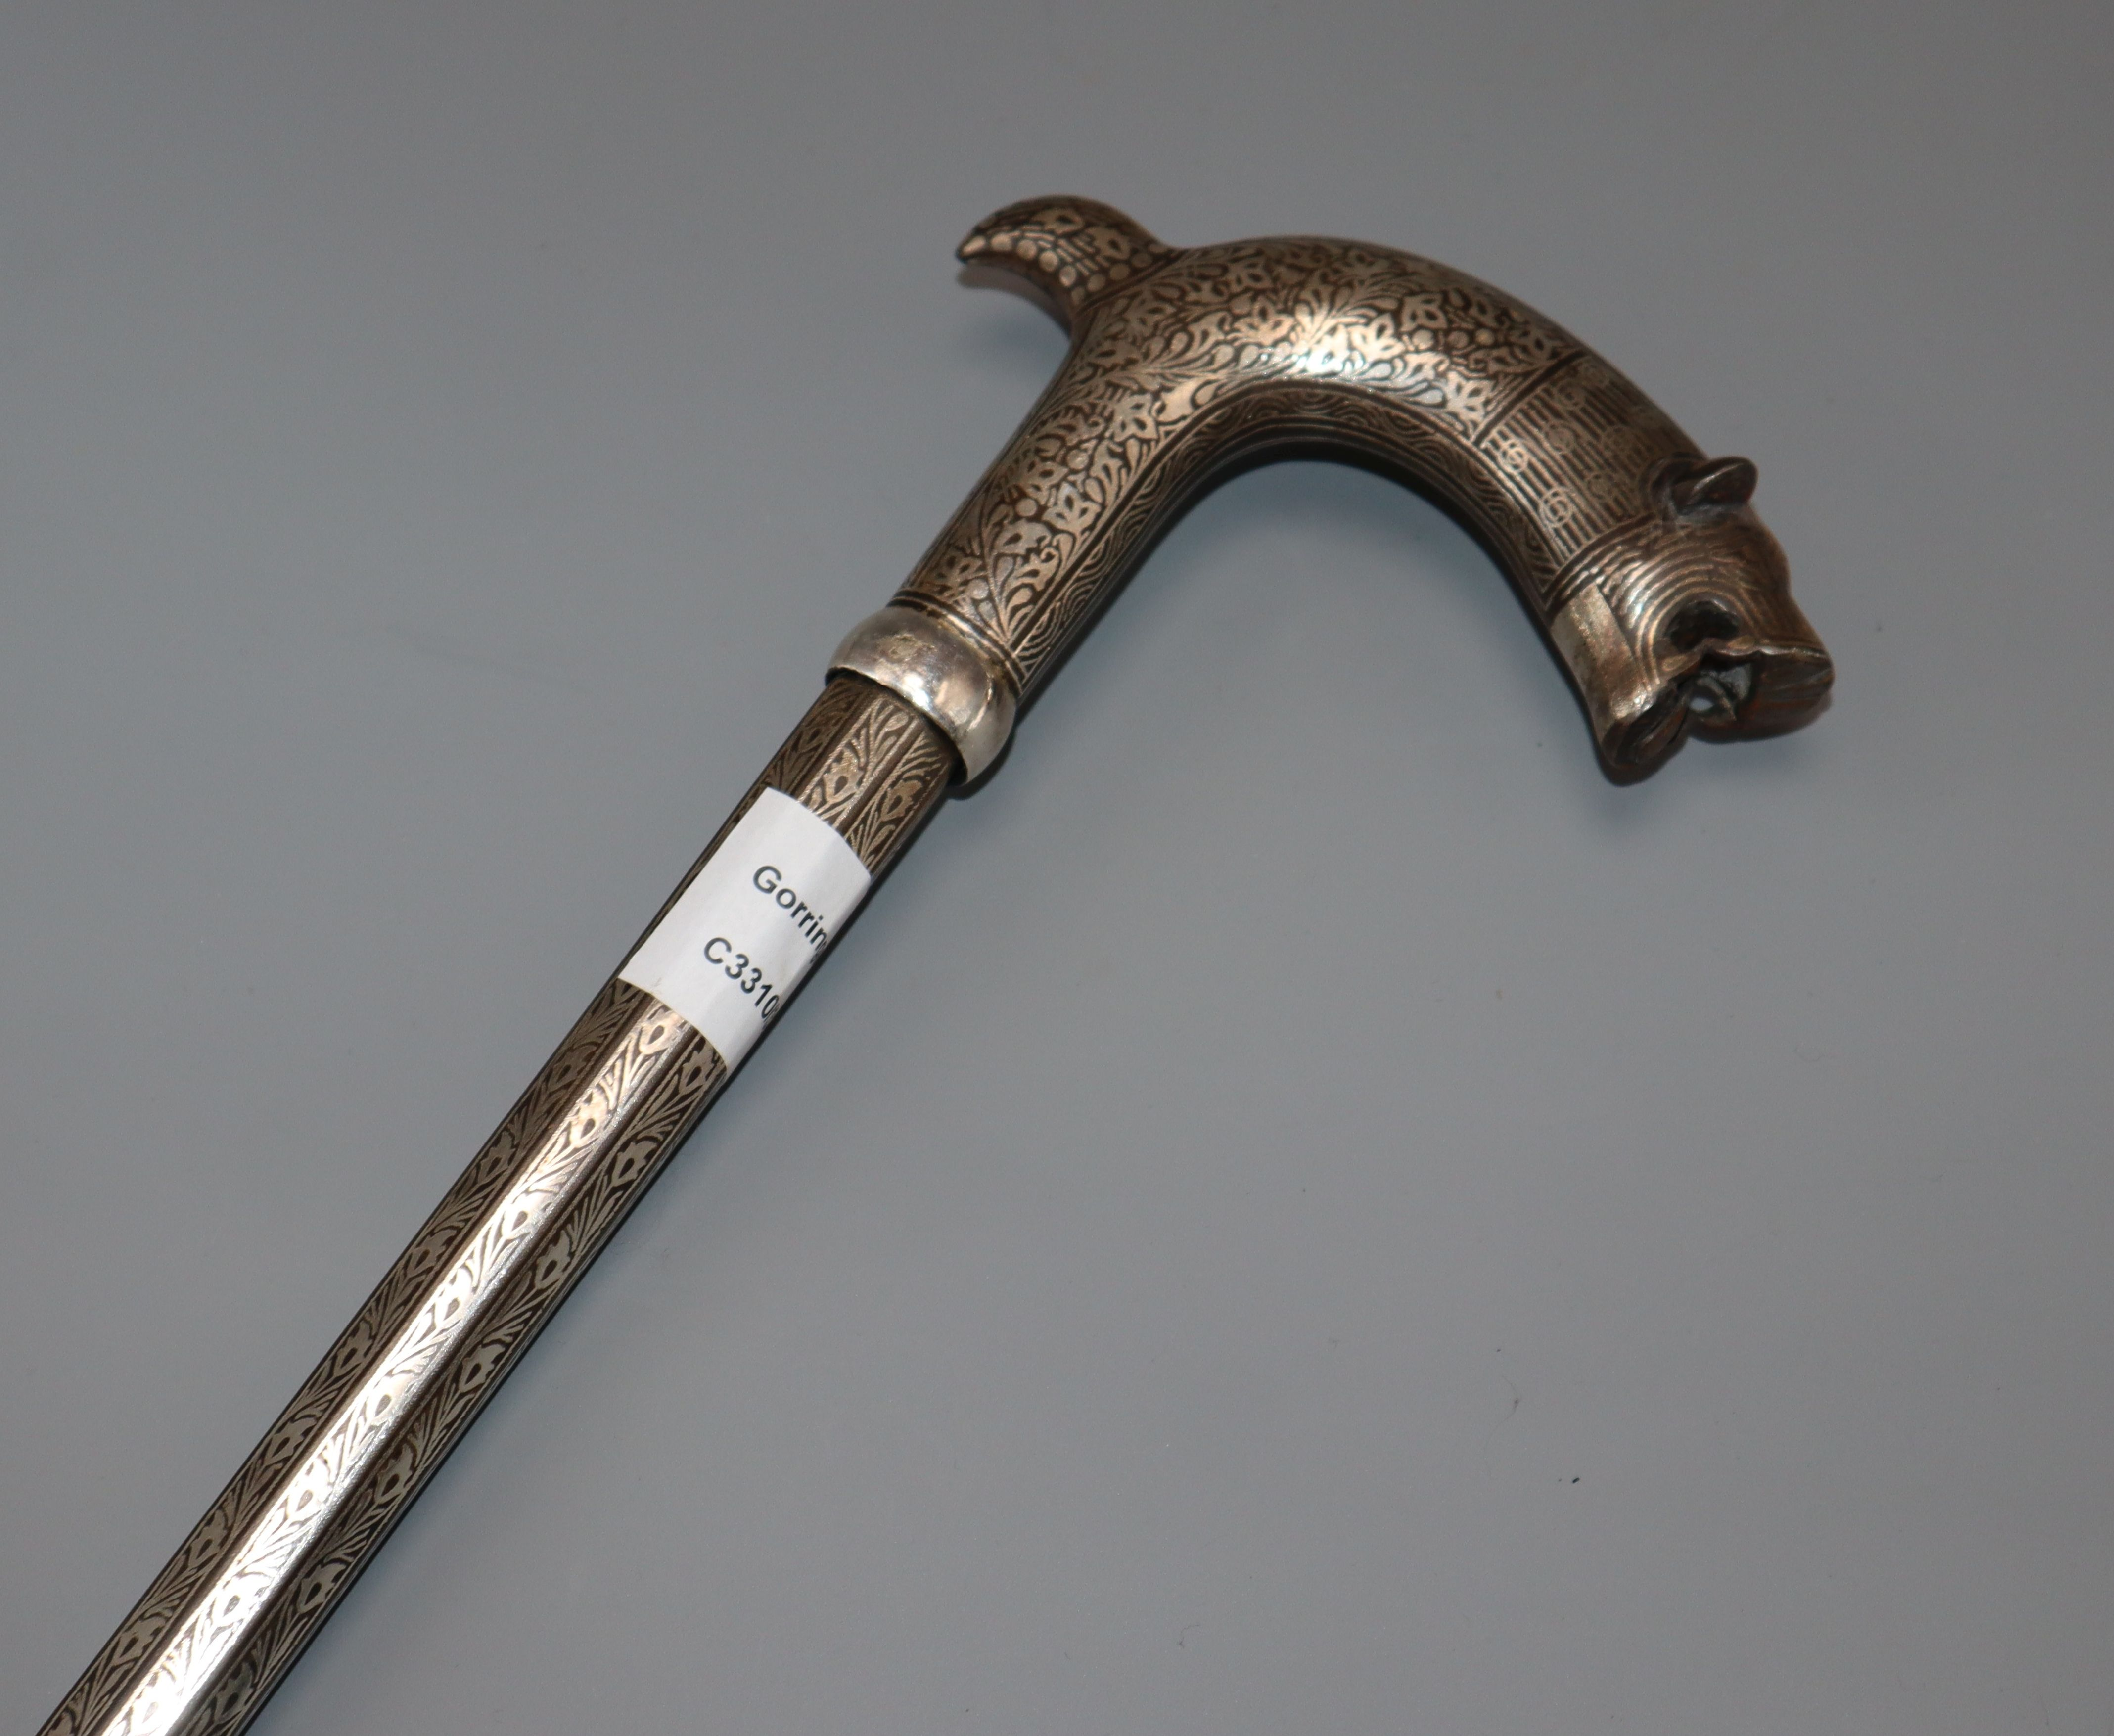 Lot 26 - A 19th century bidri ware mahout elephant tamer's stick, with tiger's head handle and decorated with